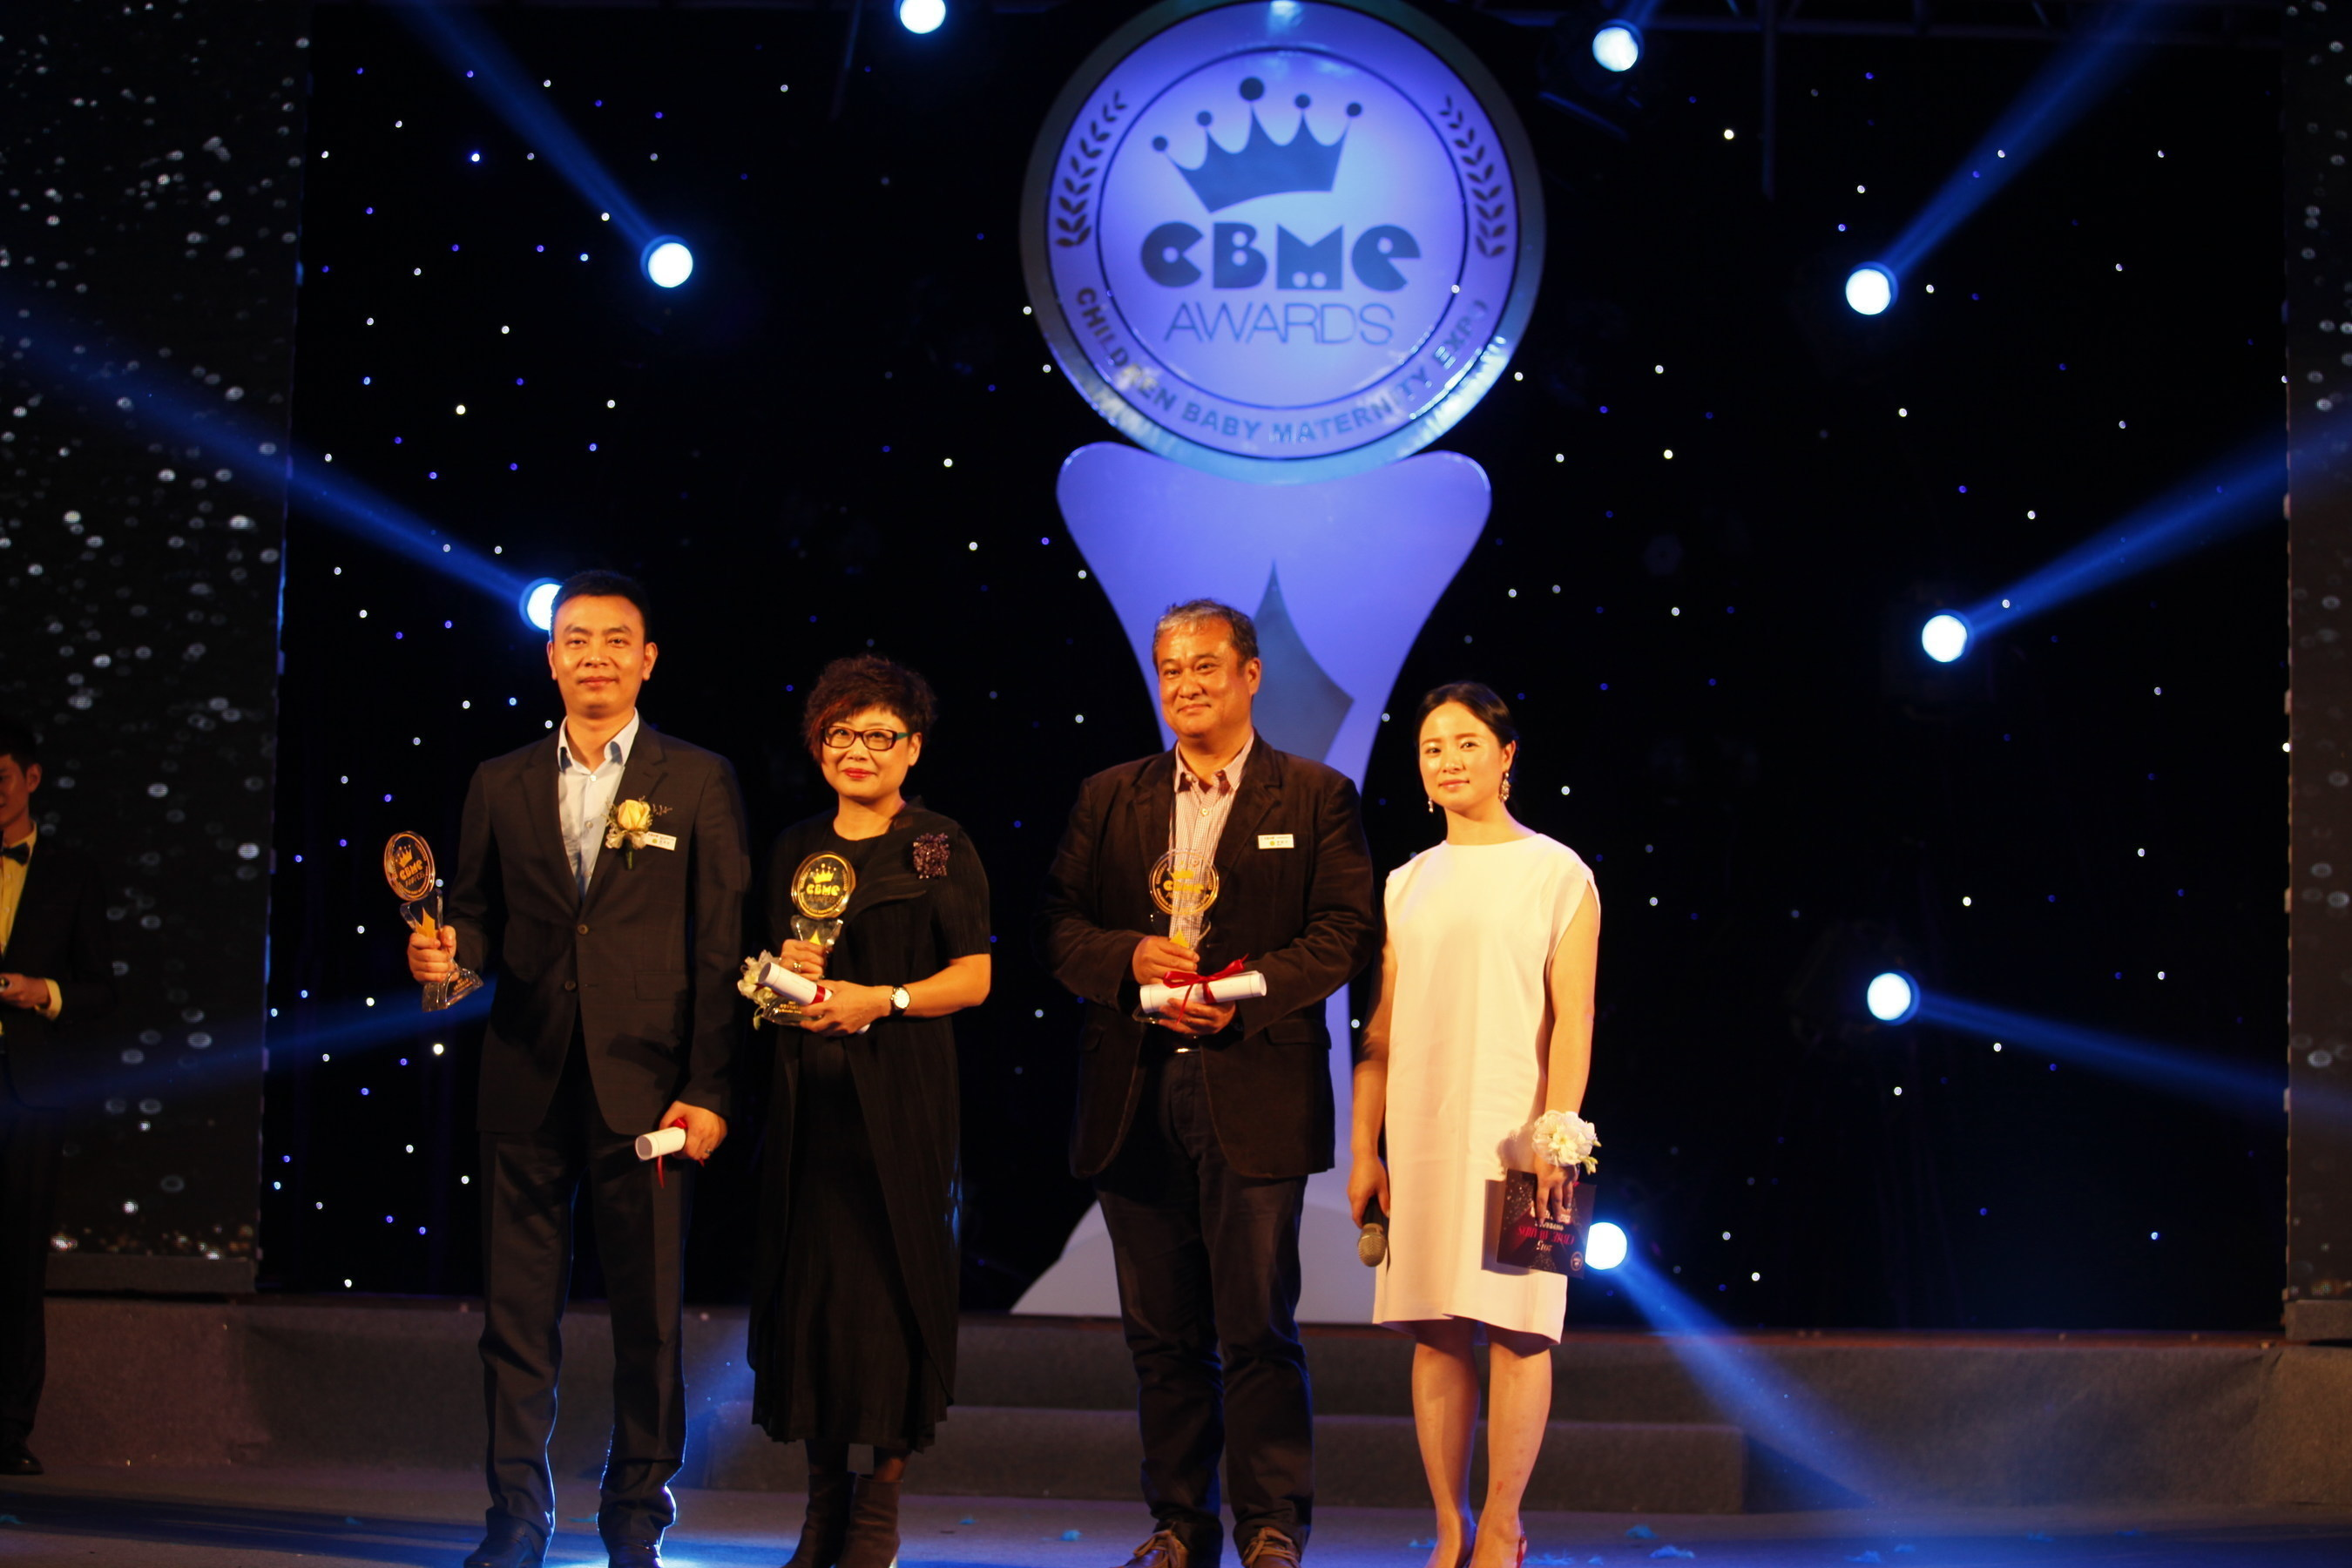 CBME AWARDS 2015 Winners Announced. Goodbaby, Britax, Pigeon, Fisher Price, NUK and Les enphants are among the ...